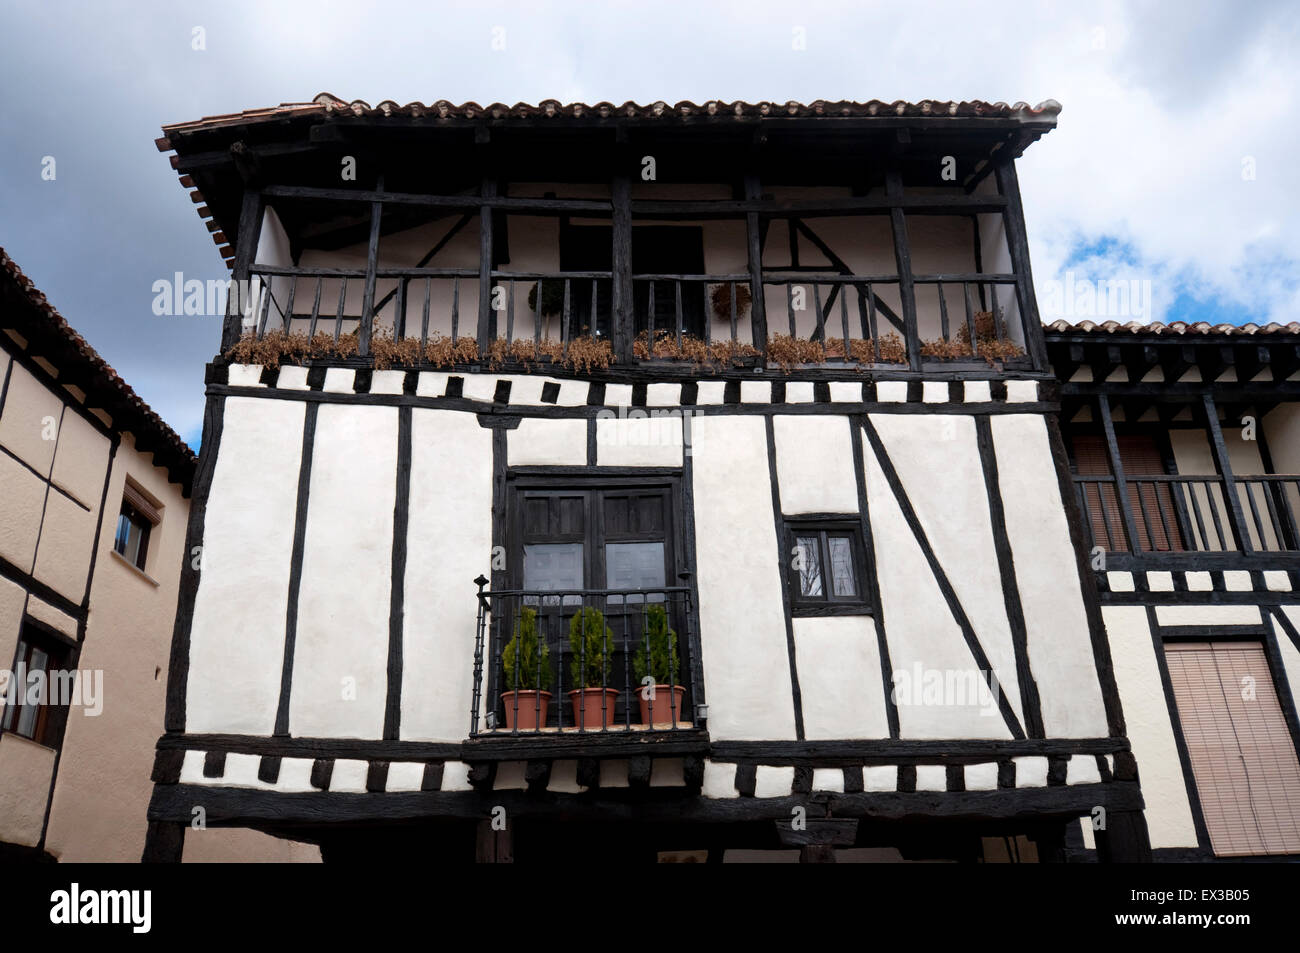 Traditional houses in Covarrubias, Burgos Province, Spain - Stock Image